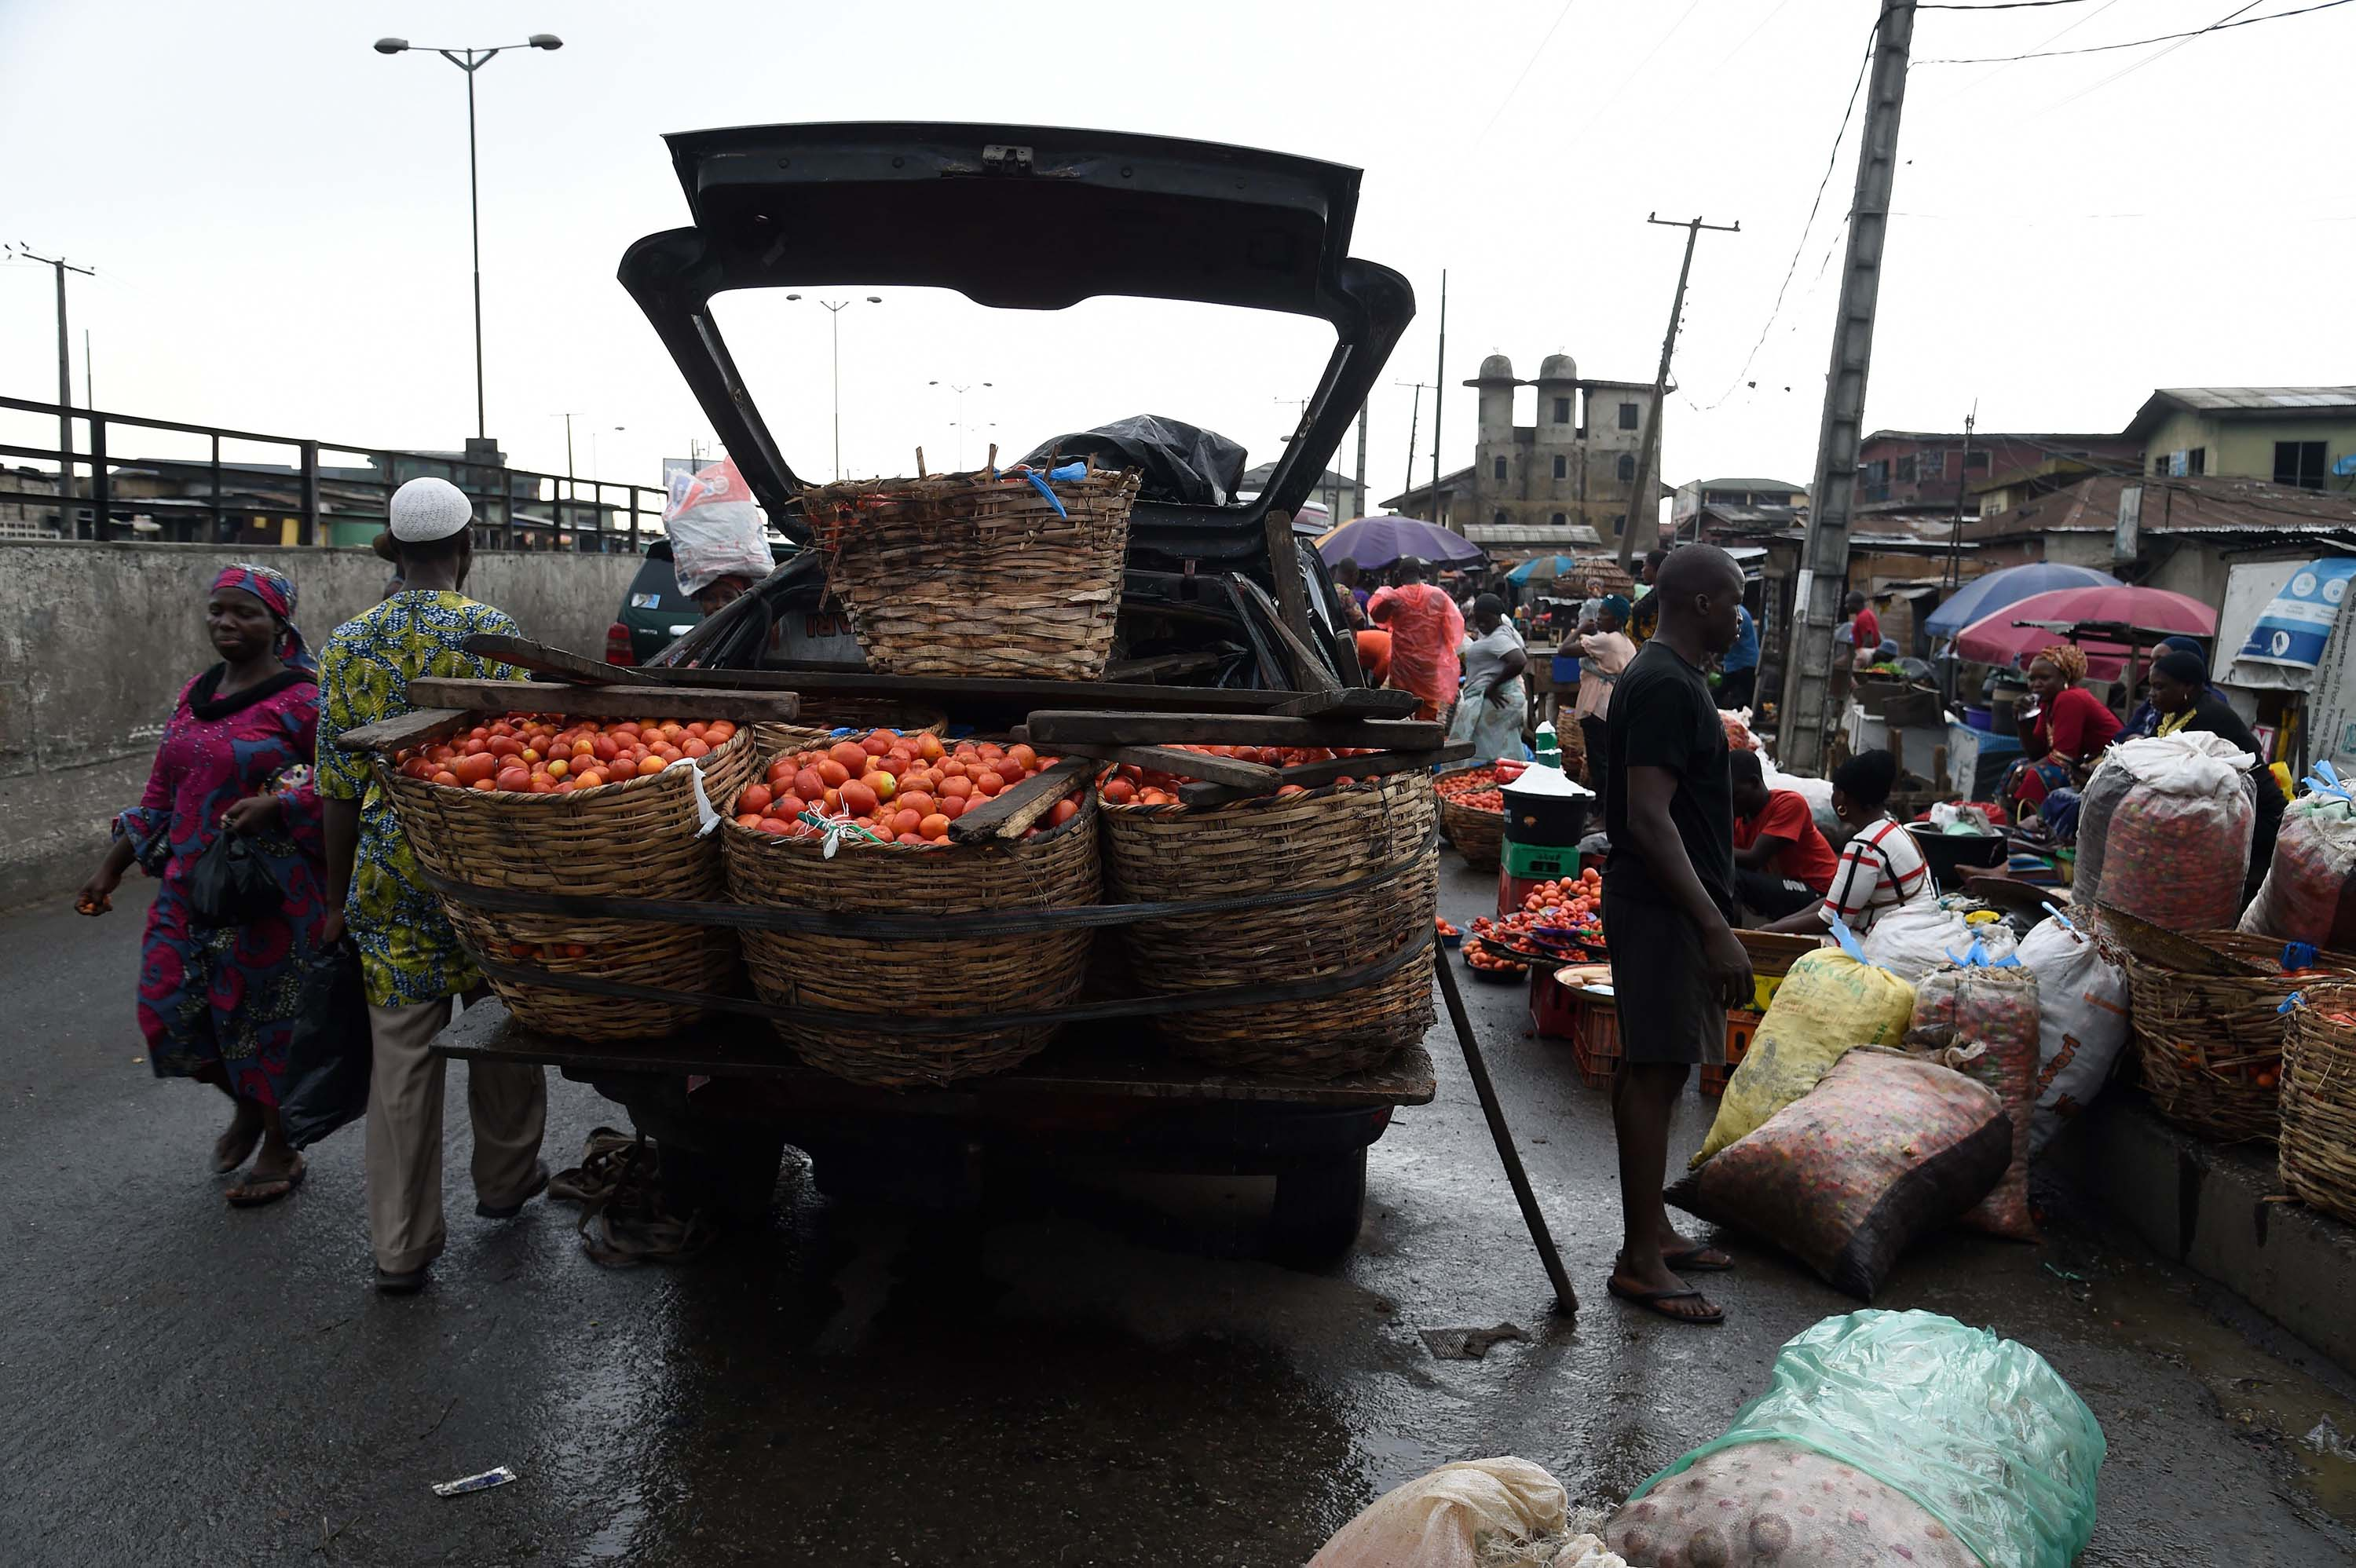 Vendors sell food at a market in Lagos, Nigeria, on April 6.